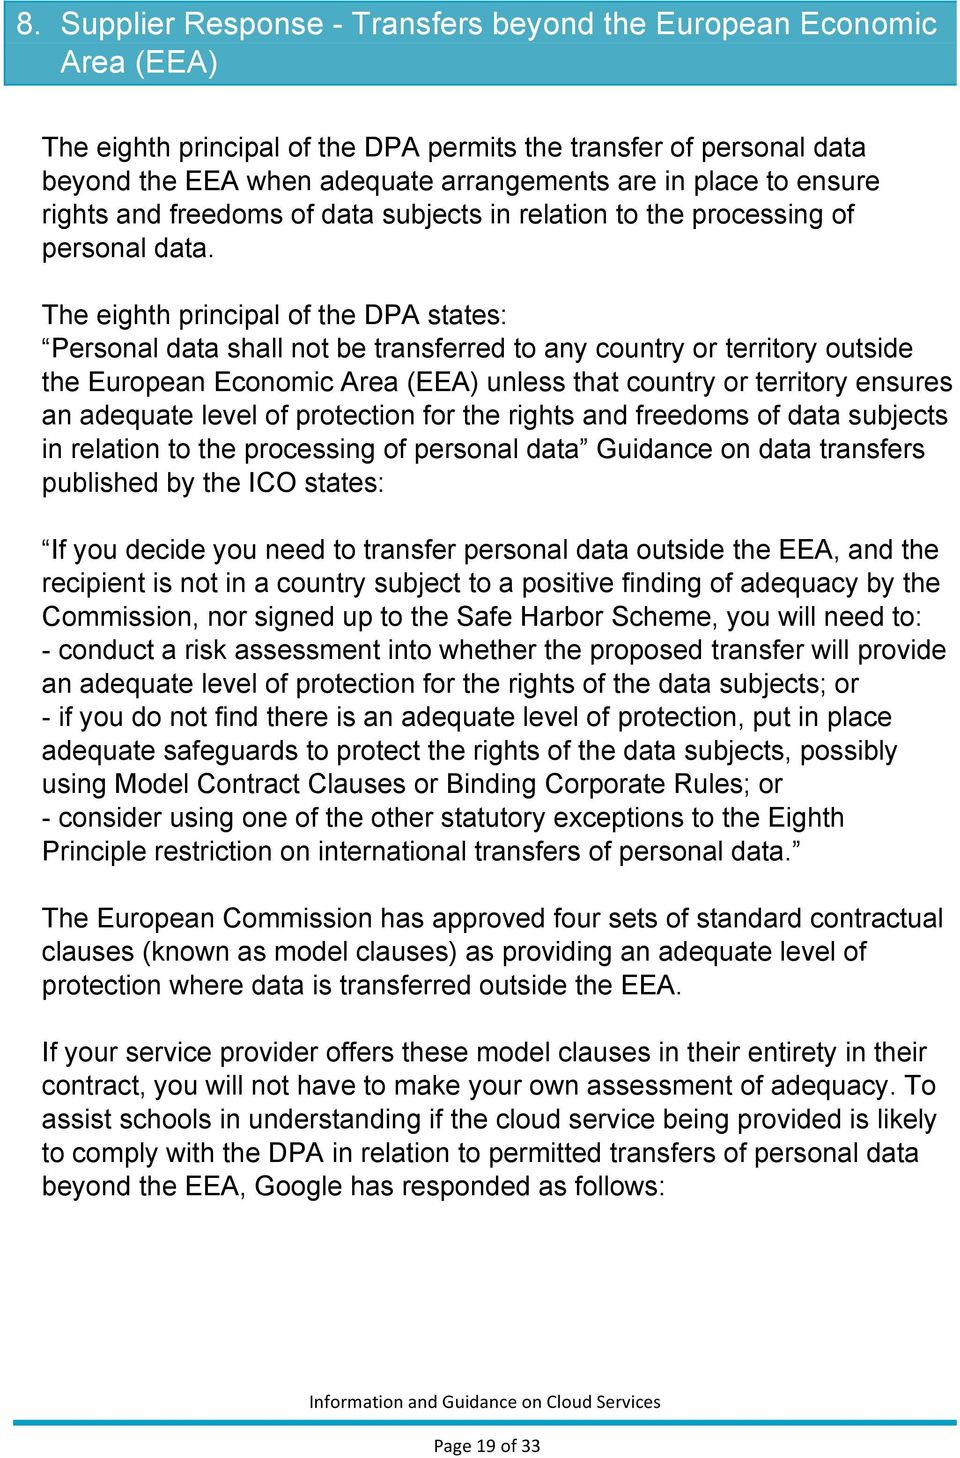 The eighth principal of the DPA states: Personal data shall not be transferred to any country or territory outside the European Economic Area (EEA) unless that country or territory ensures an